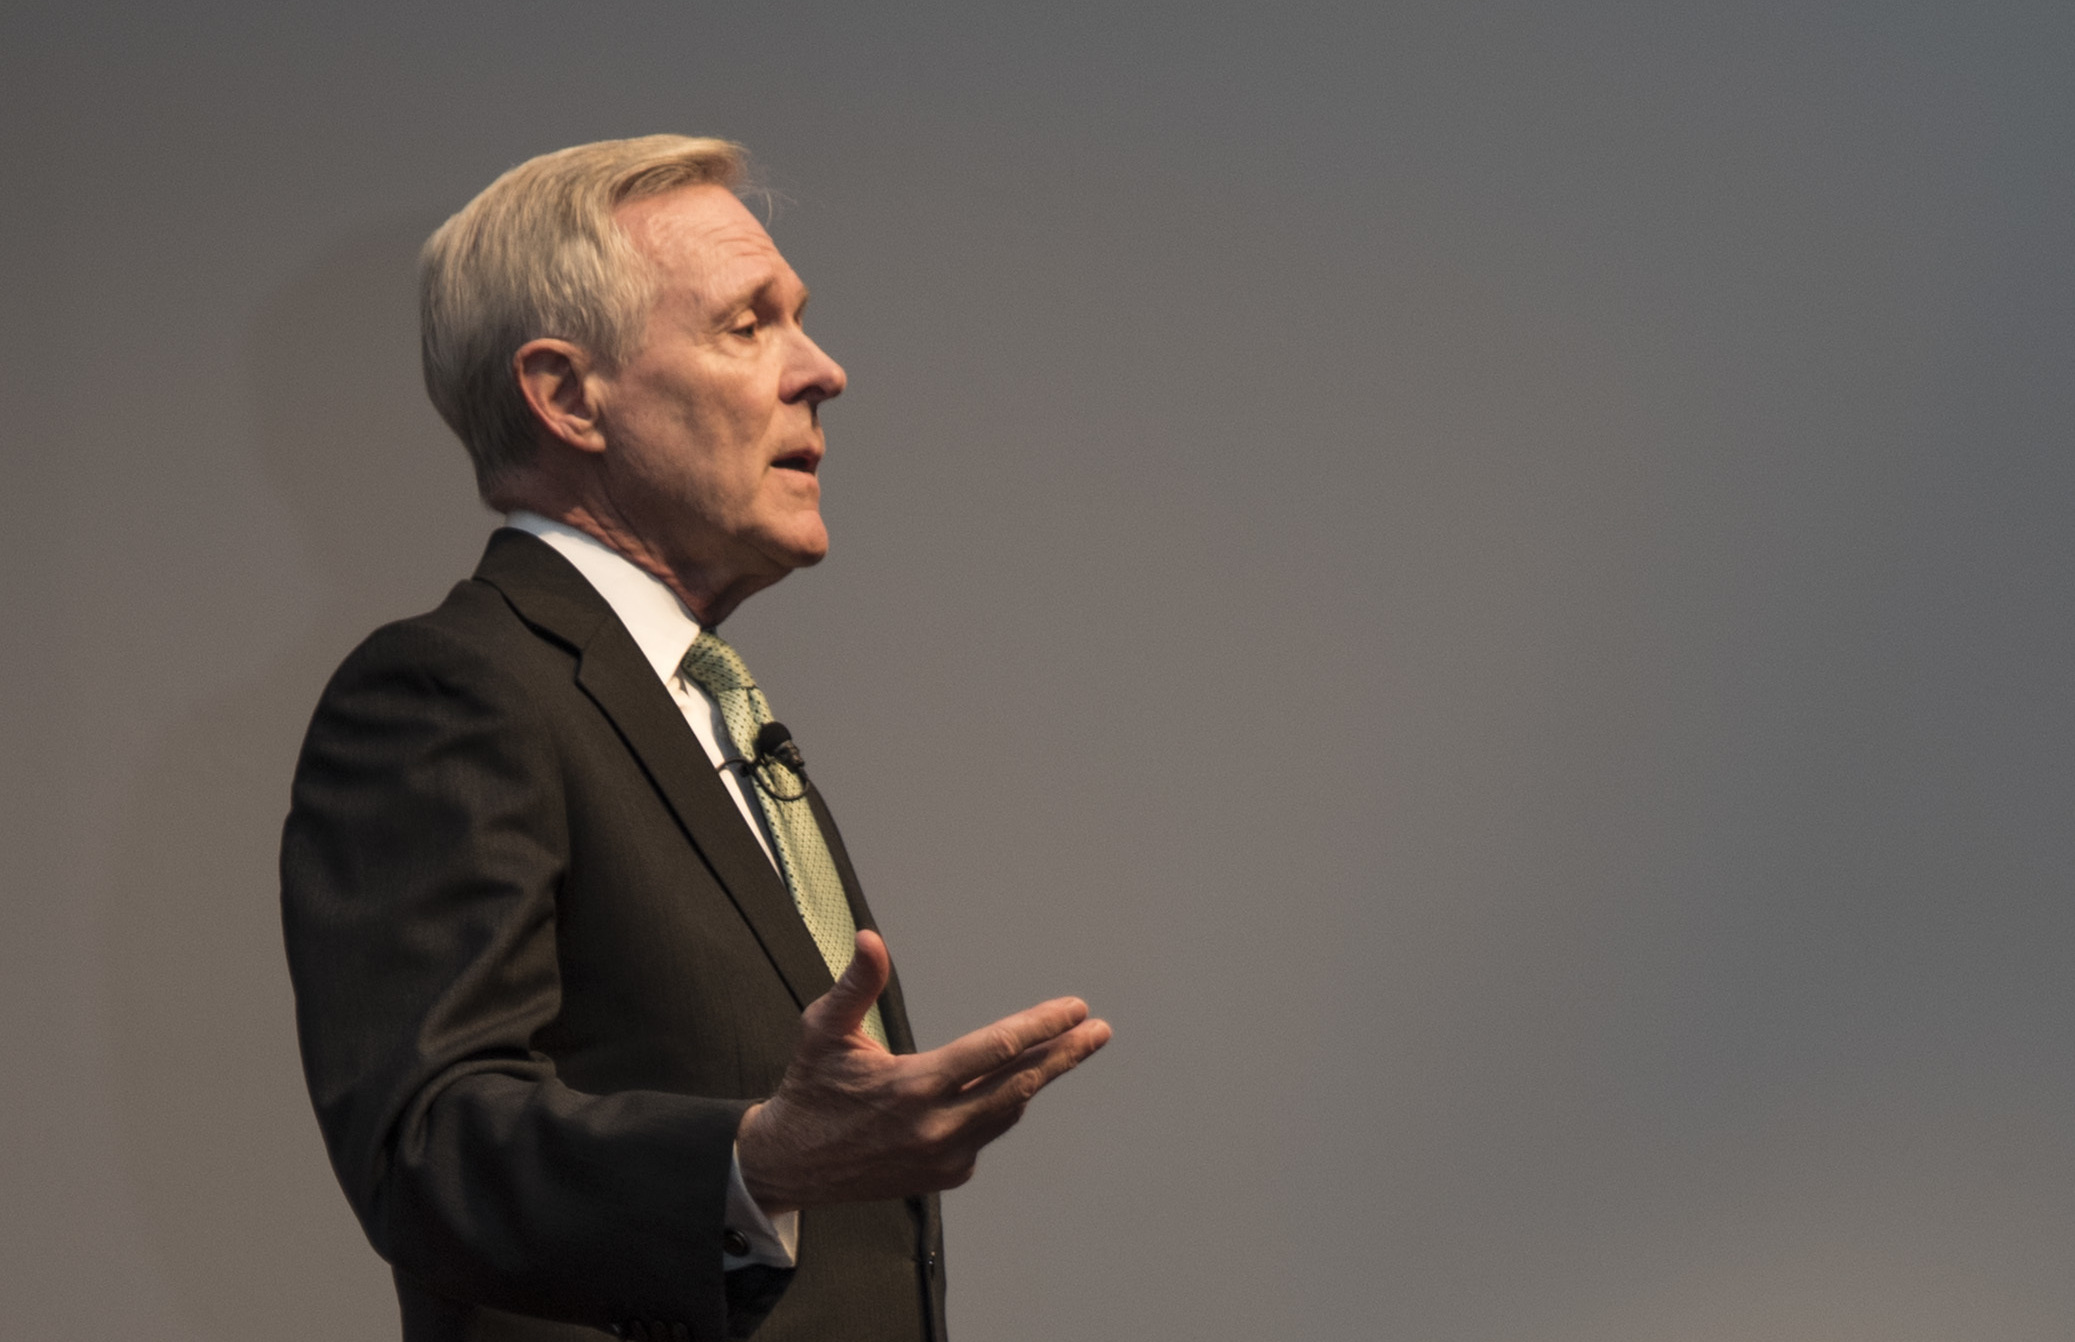 Secretary of the Navy Ray Mabus speaks Dec. 6, 2016 at an all-hands call at Walter Reed Bethesda (WRB). US Navy Photo